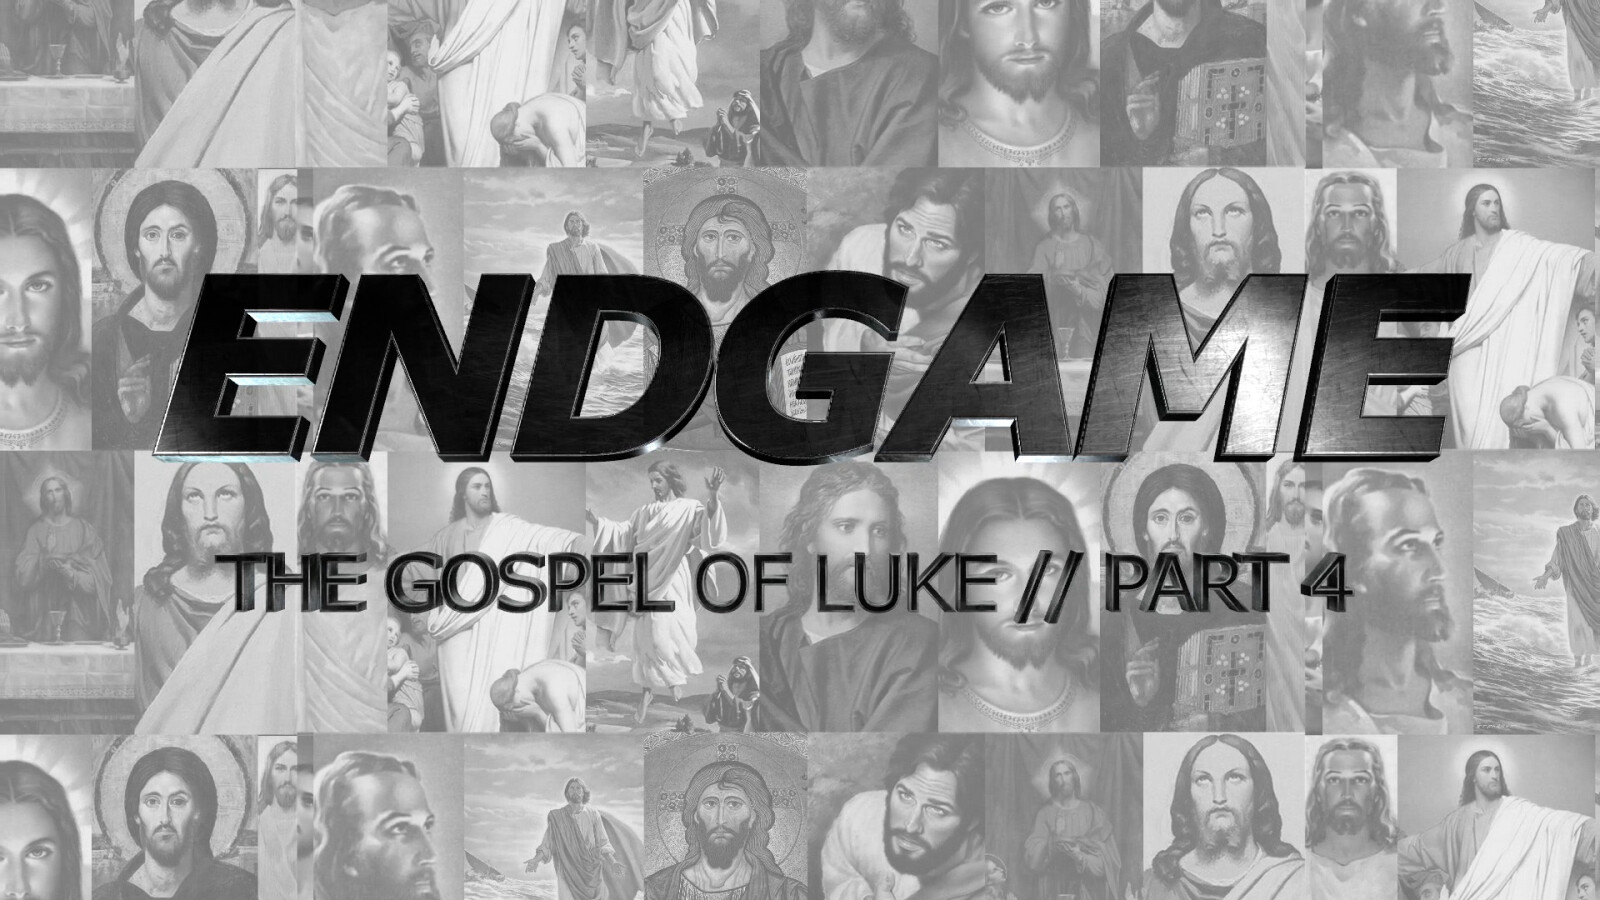 The Gospel of Luke, Part 4: Endgame